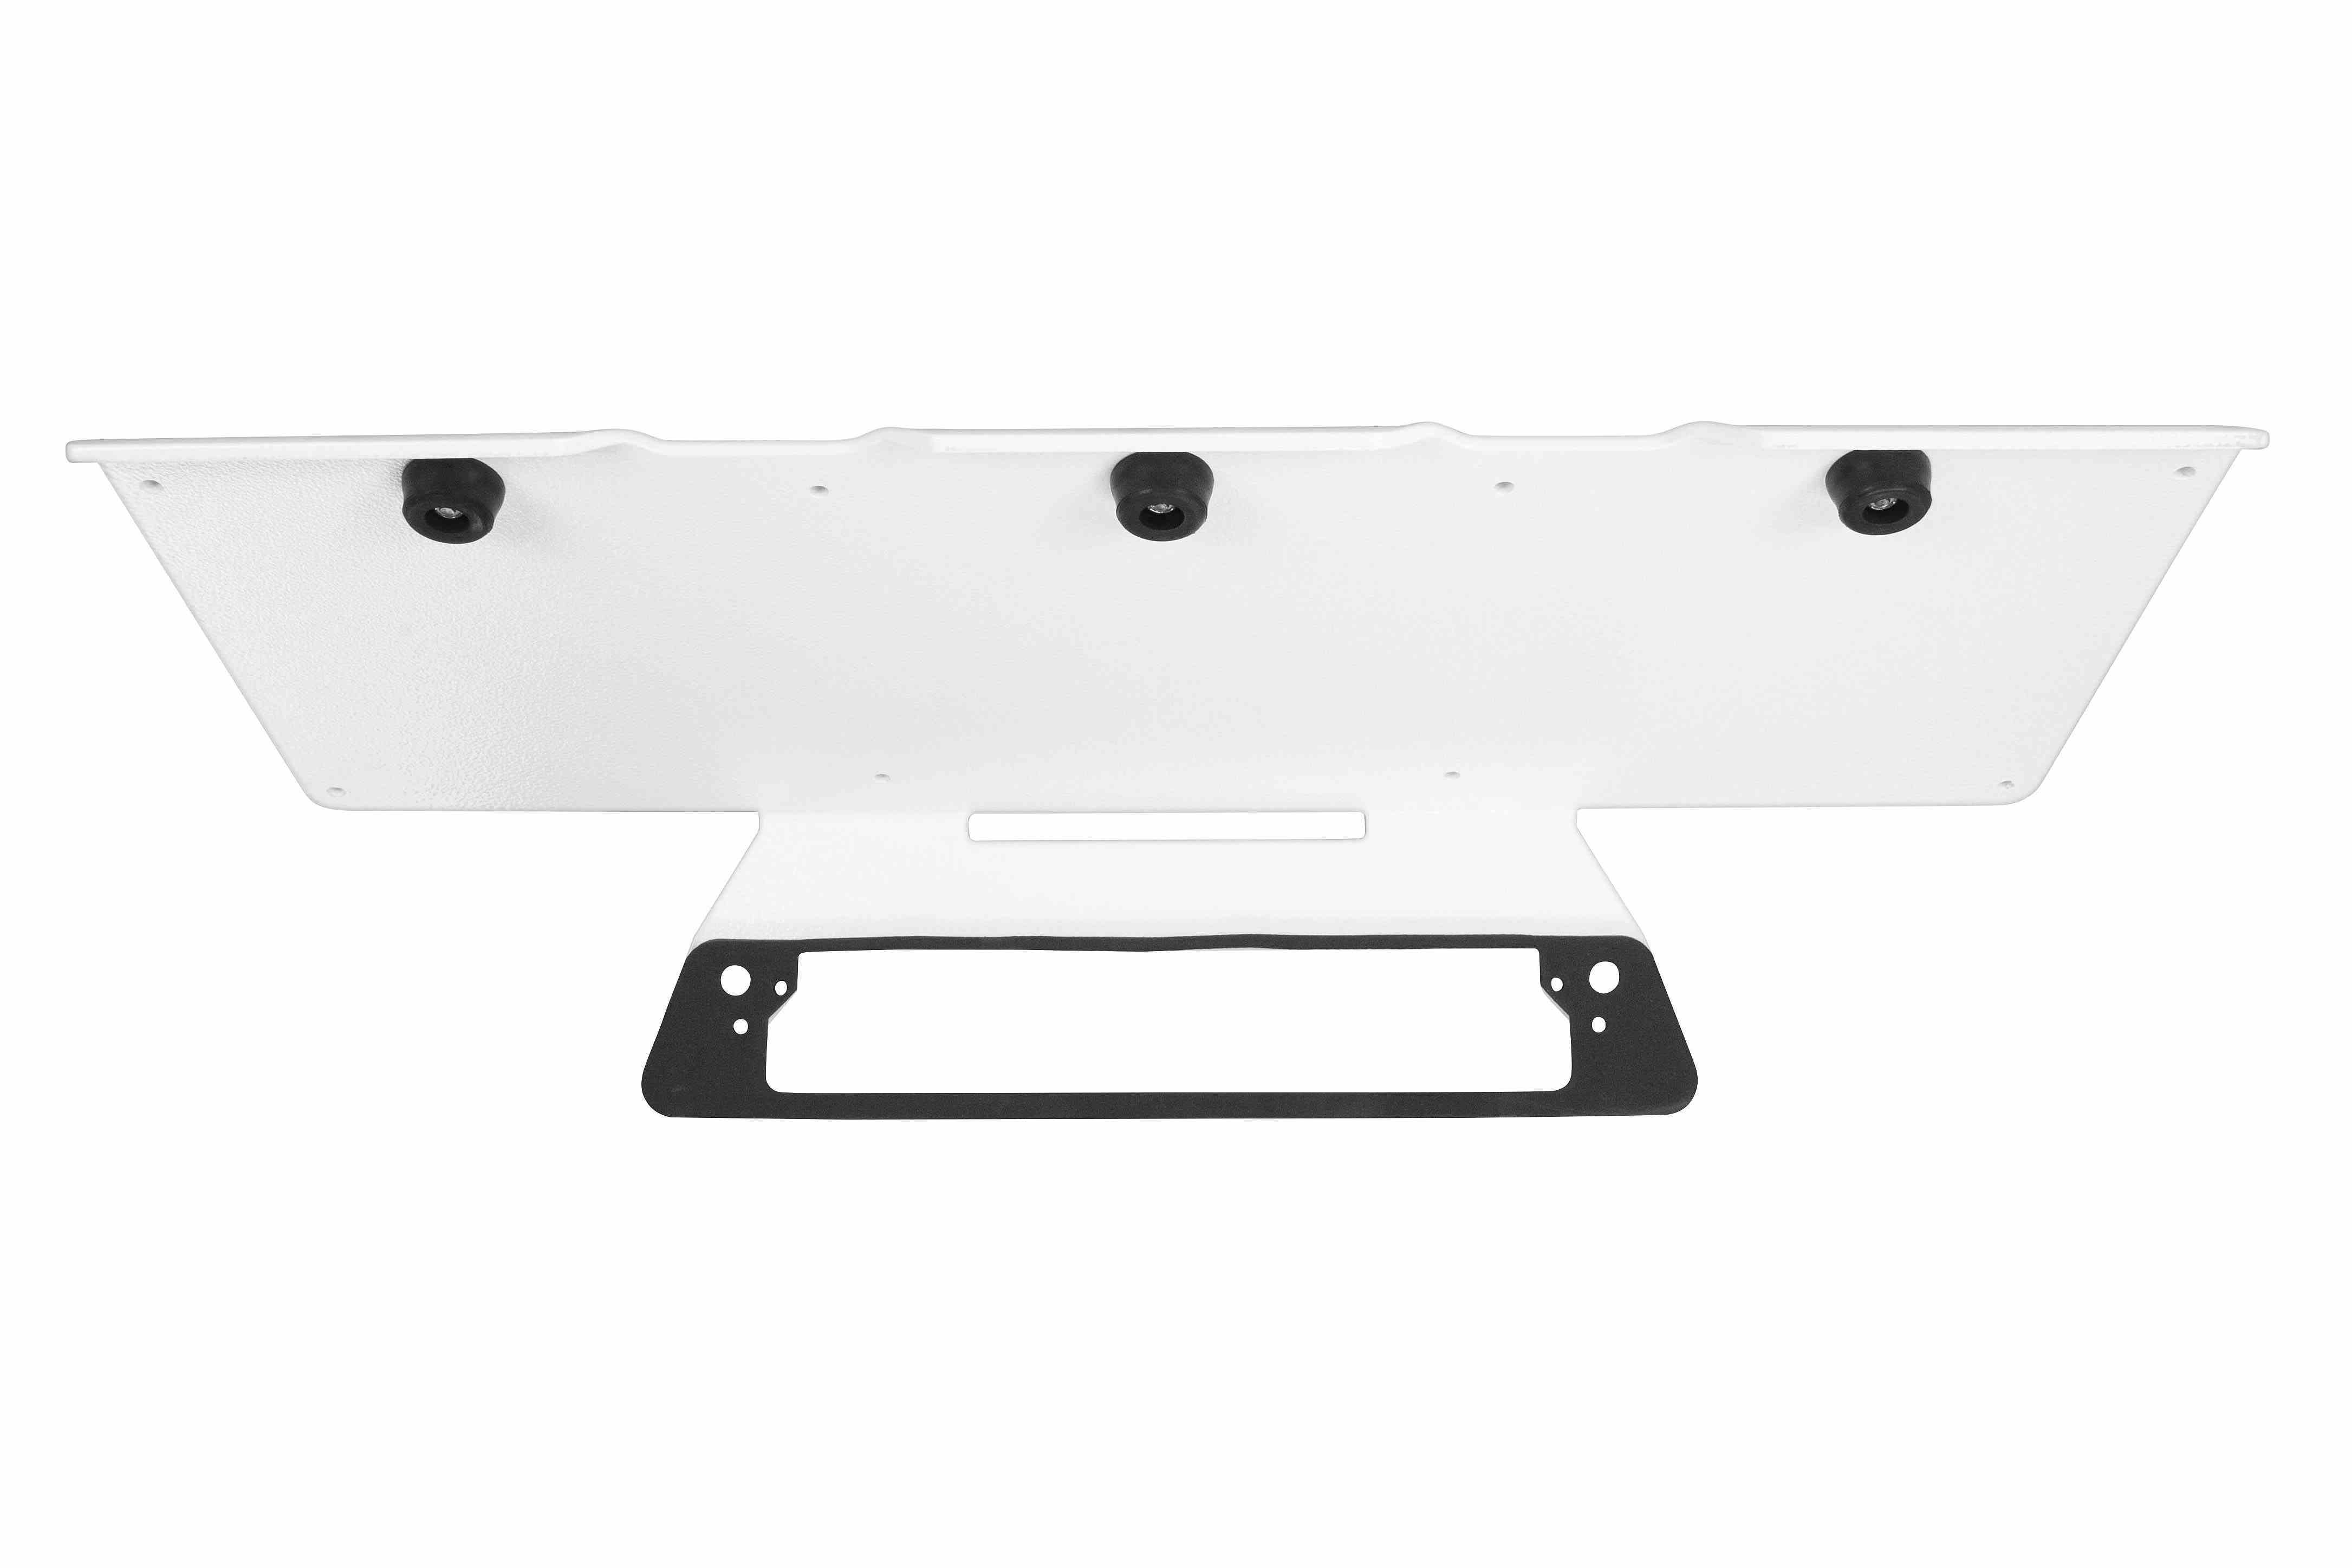 2018 Chevrolet Silverado 1500 Permanent, No-Drill Mounting Plate